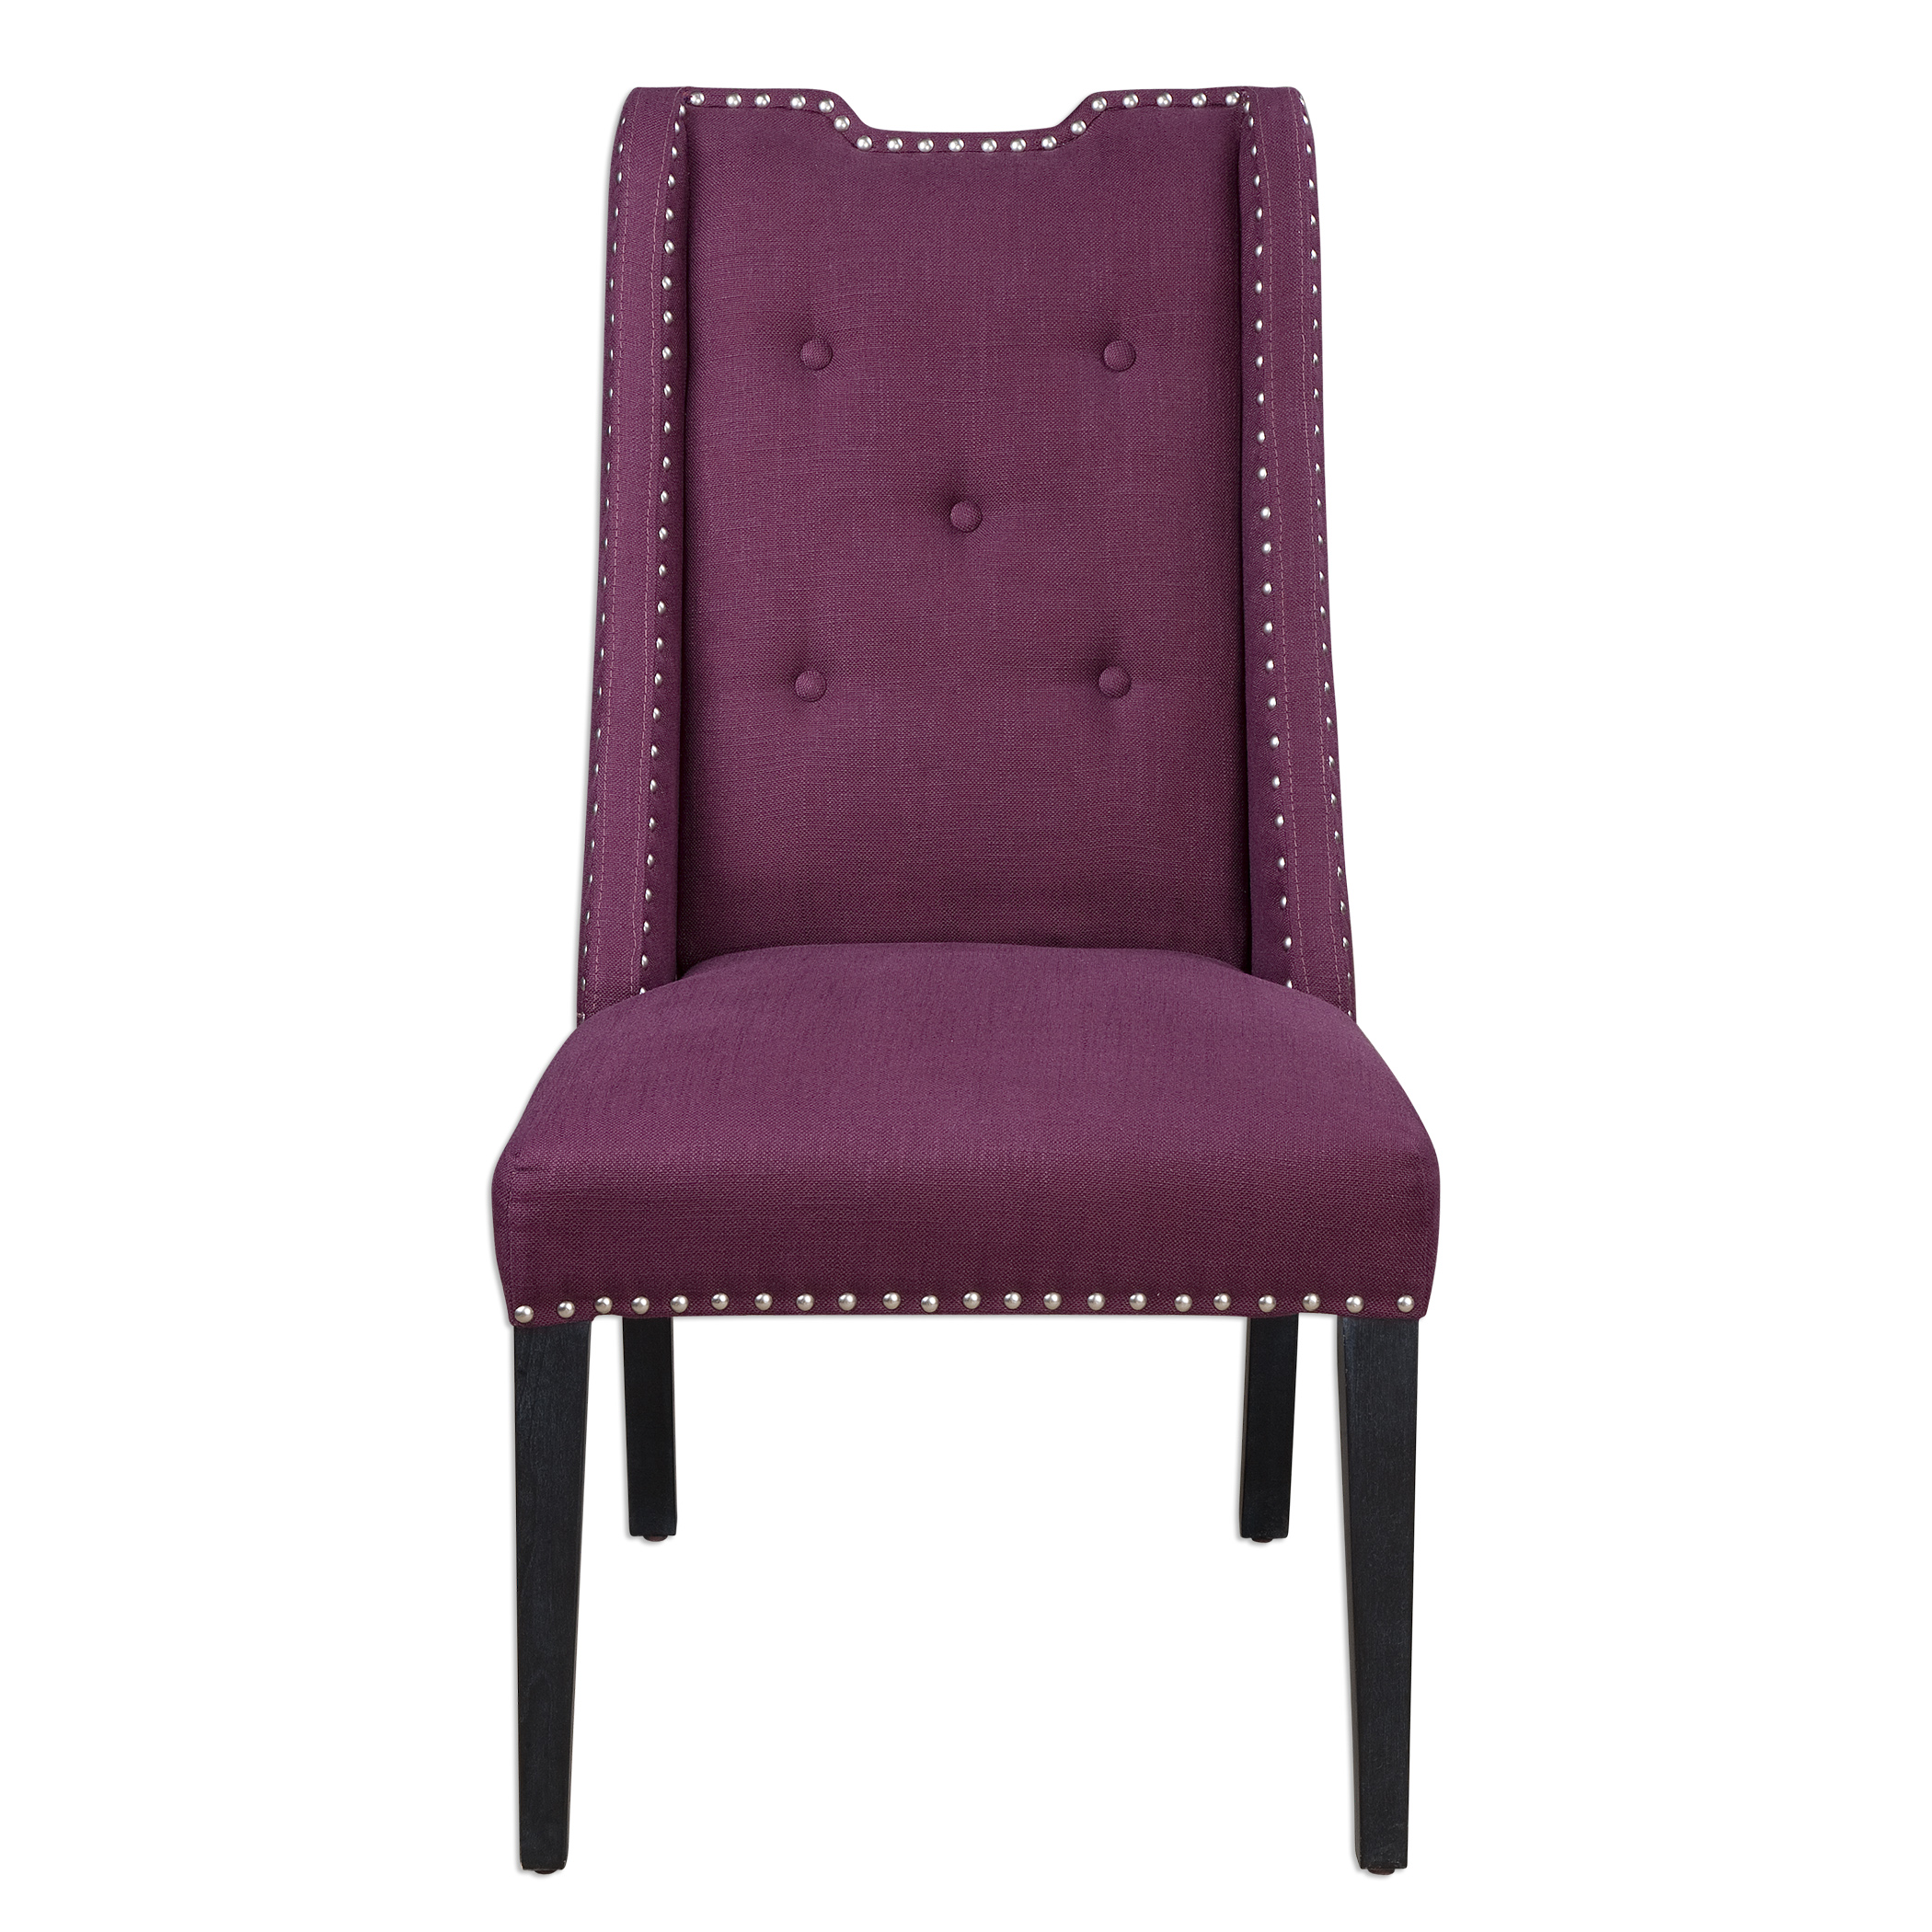 Uttermost Accent Furniture Pippa Purple Accent Chair - Item Number: 23292